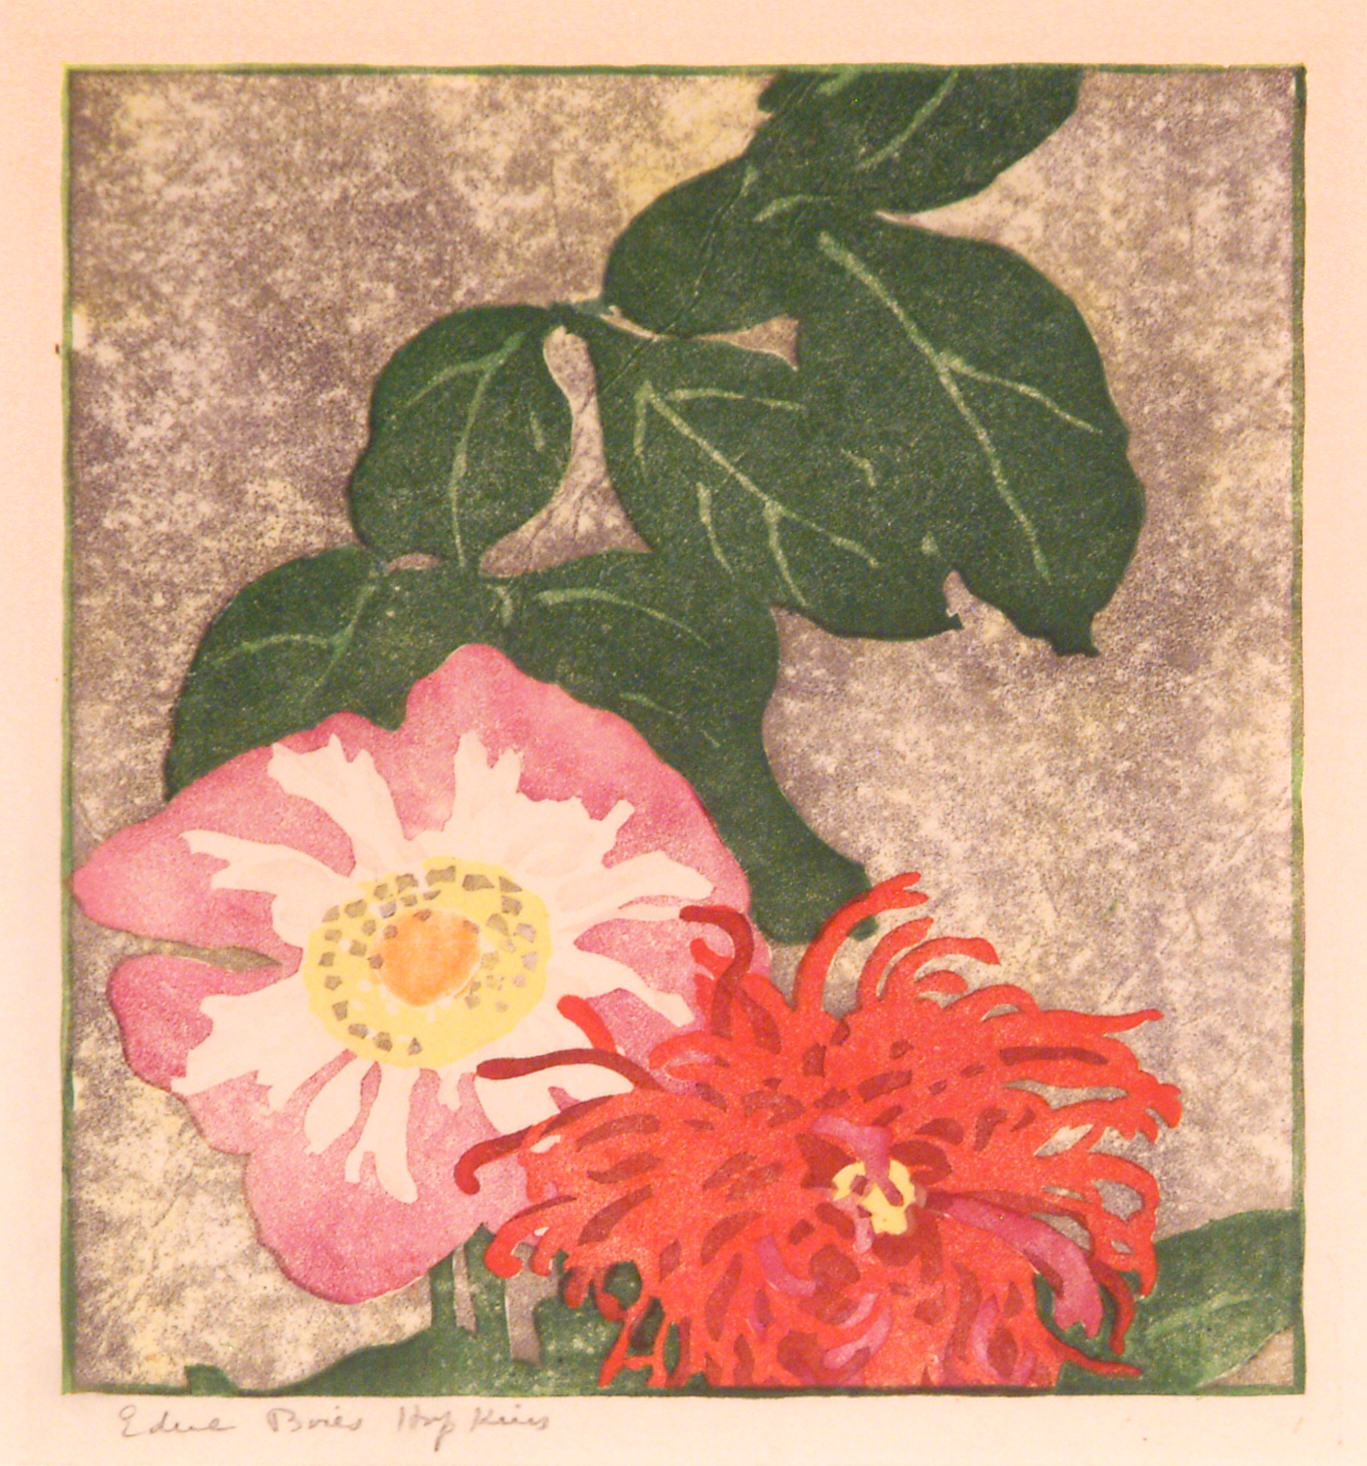 Edna Boies Hopkins | BLOSSOMS (also known as TWO DAHLIAS) | color woodblock | 8-1/2 x 7-1/4'' | 1915 | Private collection, Courtesy of Keny Galleries